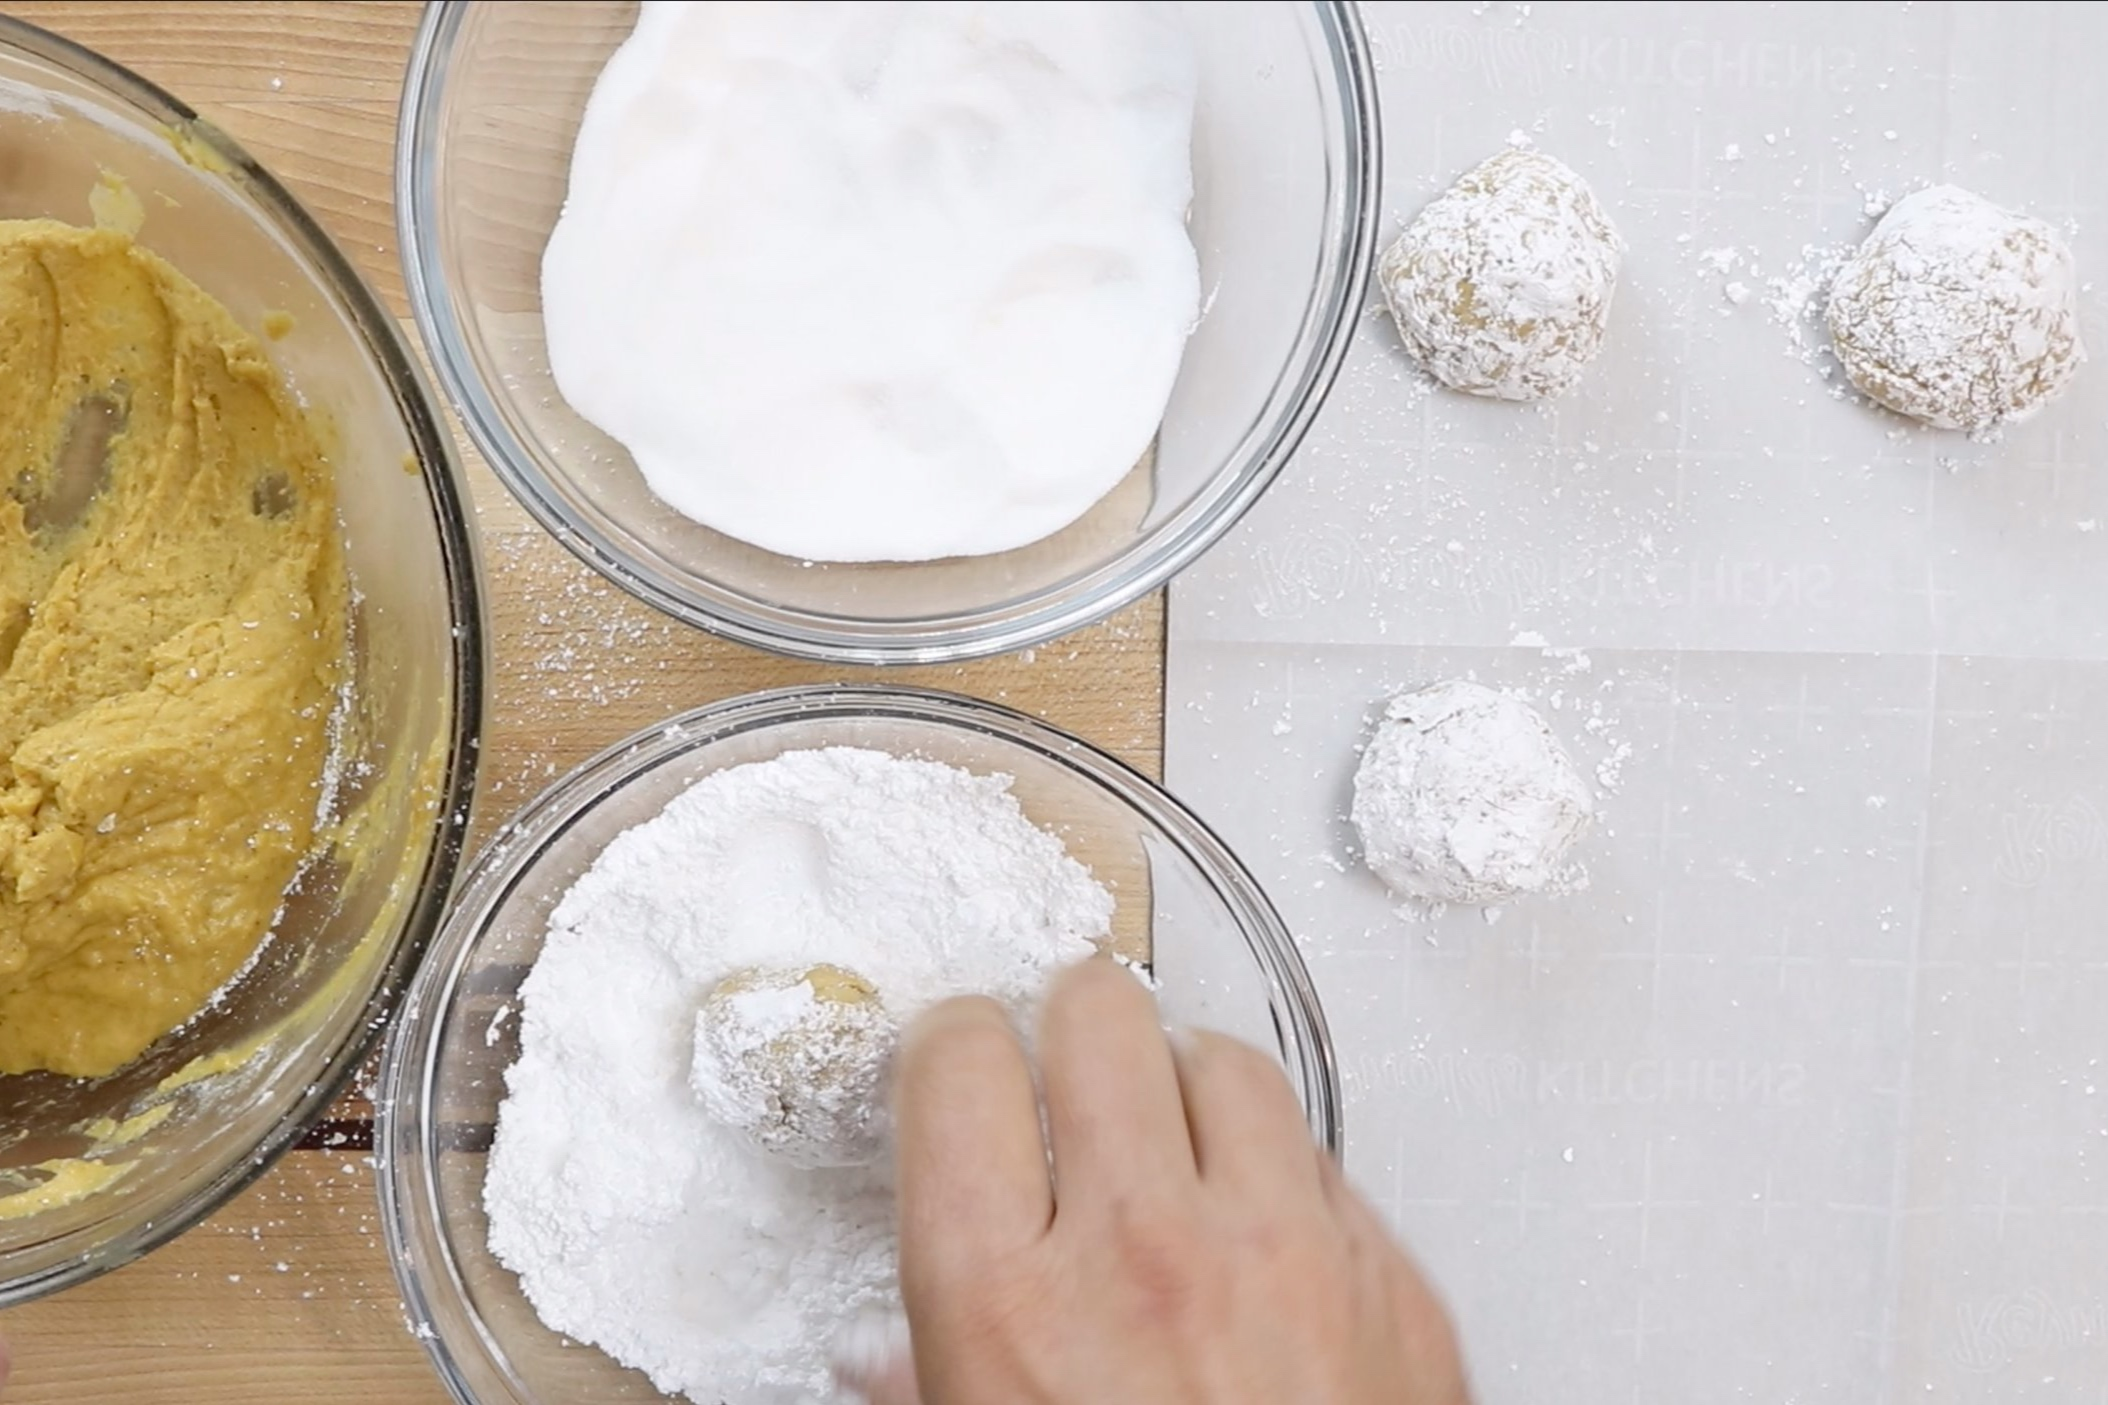 11. Then drop the ball in the powdered sugar and coat completely. Place dough ball onto baking sheet a couple of inches apart. Repeat steps making all the dough balls. -